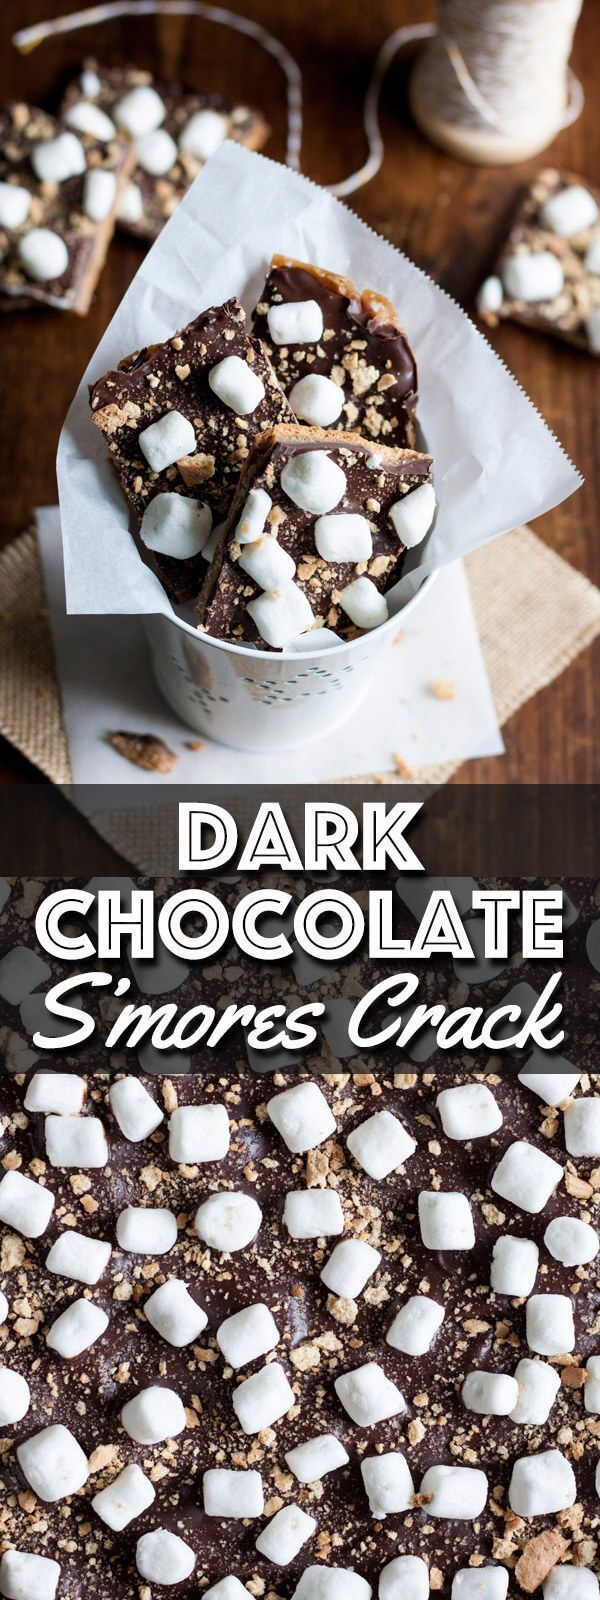 Dark Chocolate S'mores Crack is an easy Graham cracker toffee recipe that you can whip up in just minutes. Enjoy this version of S'mores without having to light a camp fire! #SundaySupper | wildwildwhisk.com